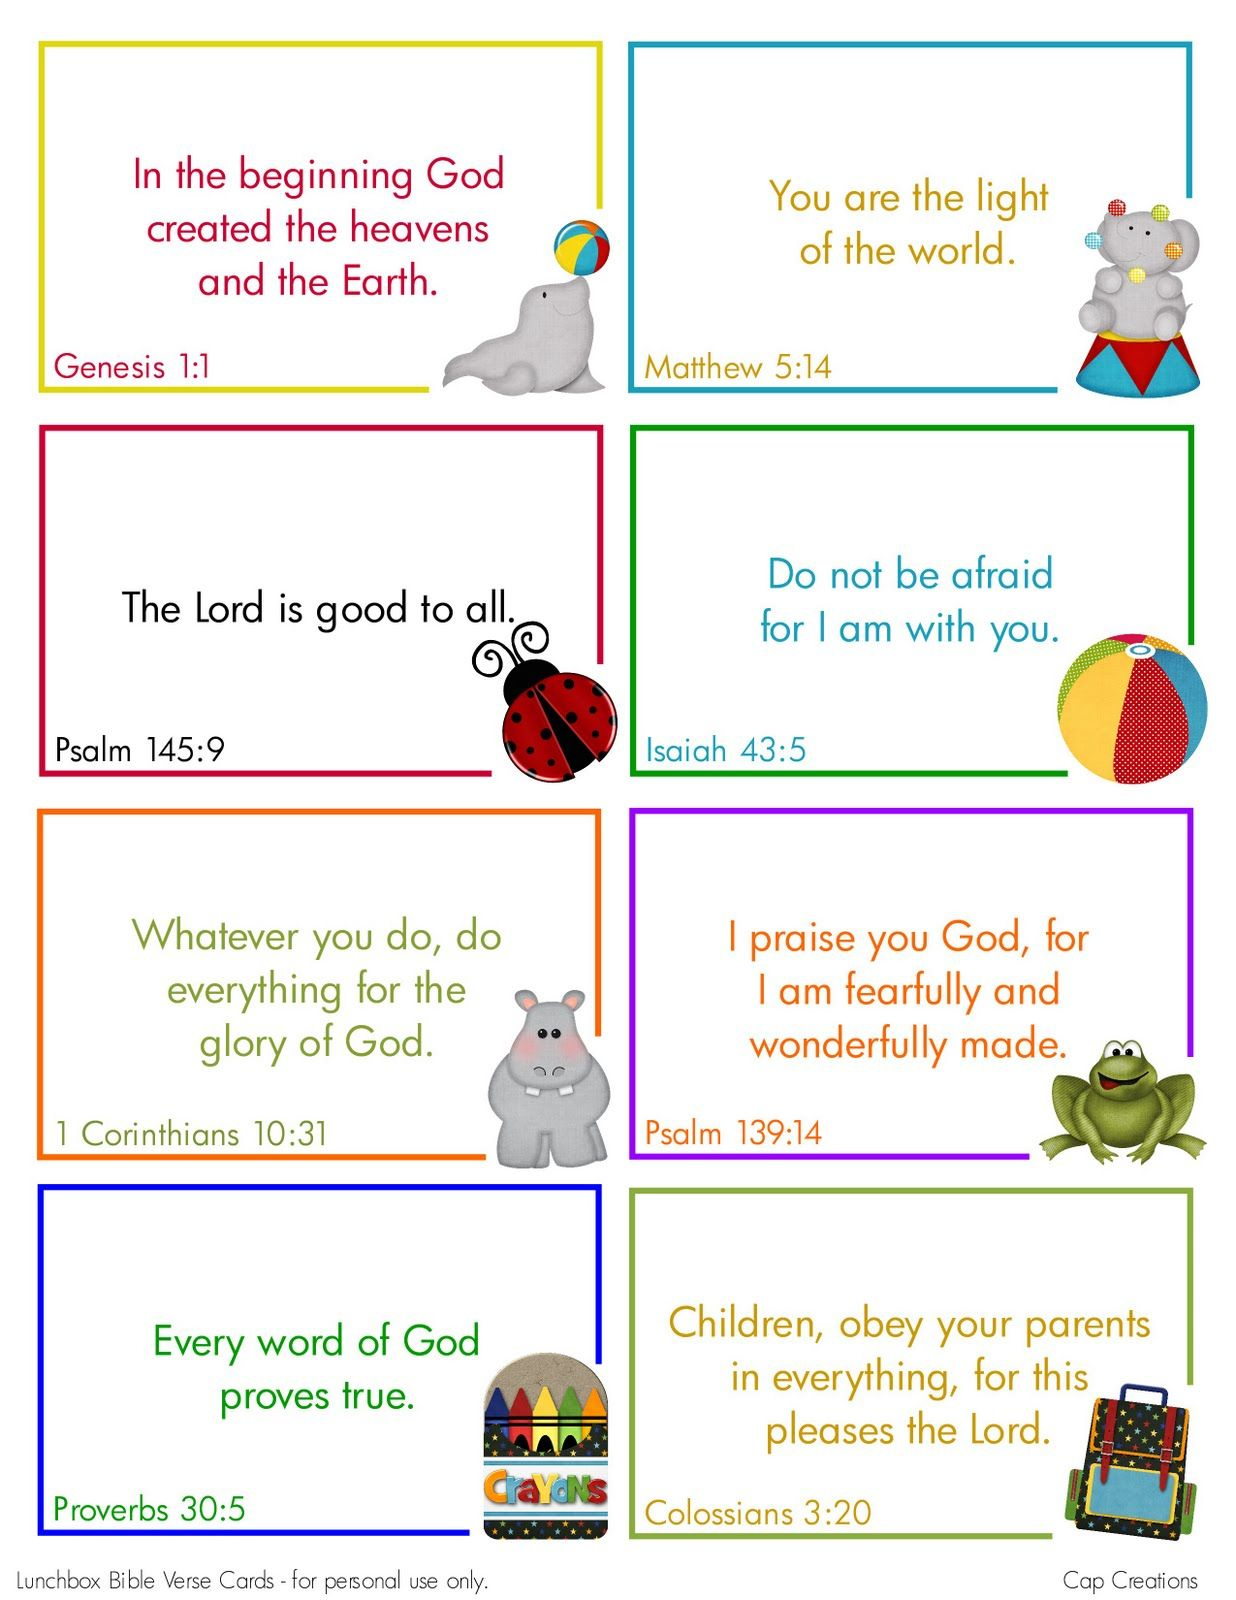 Free Printable Lunchbox Bible Verse Cards Cute.could Use These - Free Printable Bible Verses For Children